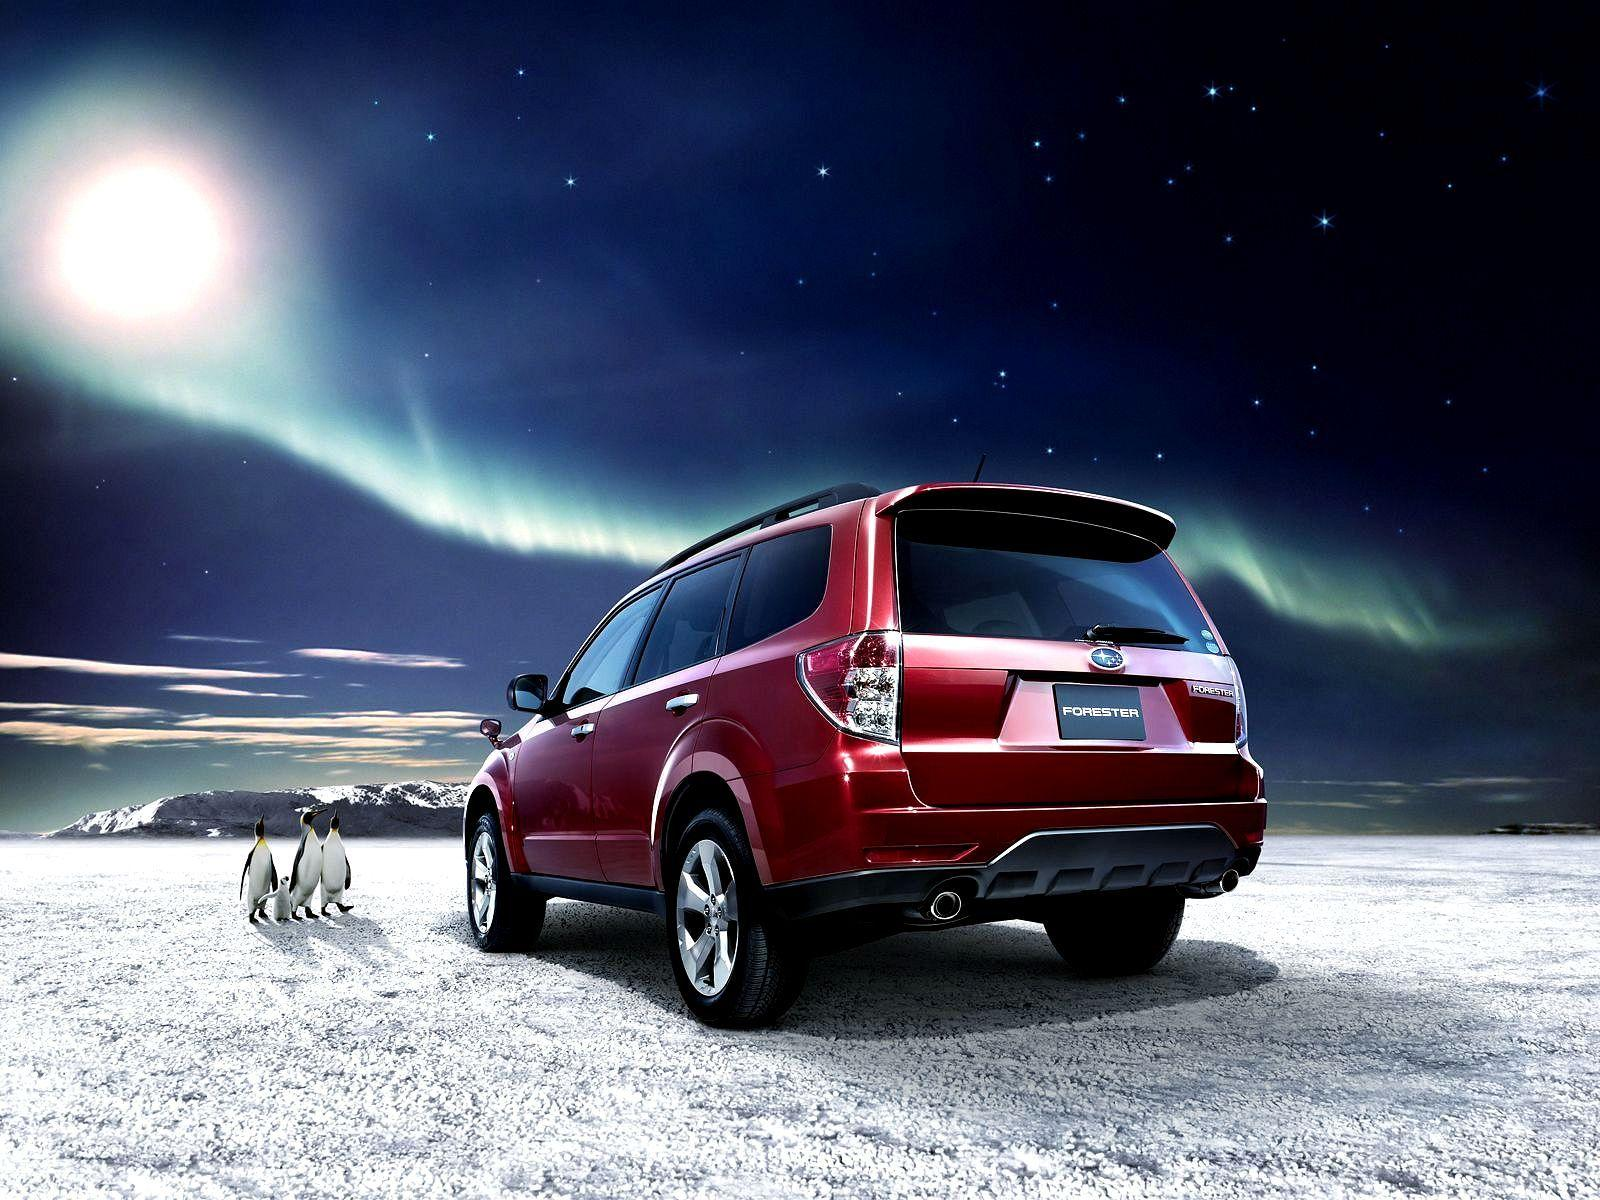 Subaru Forester Wallpapers Wallpaper Cave